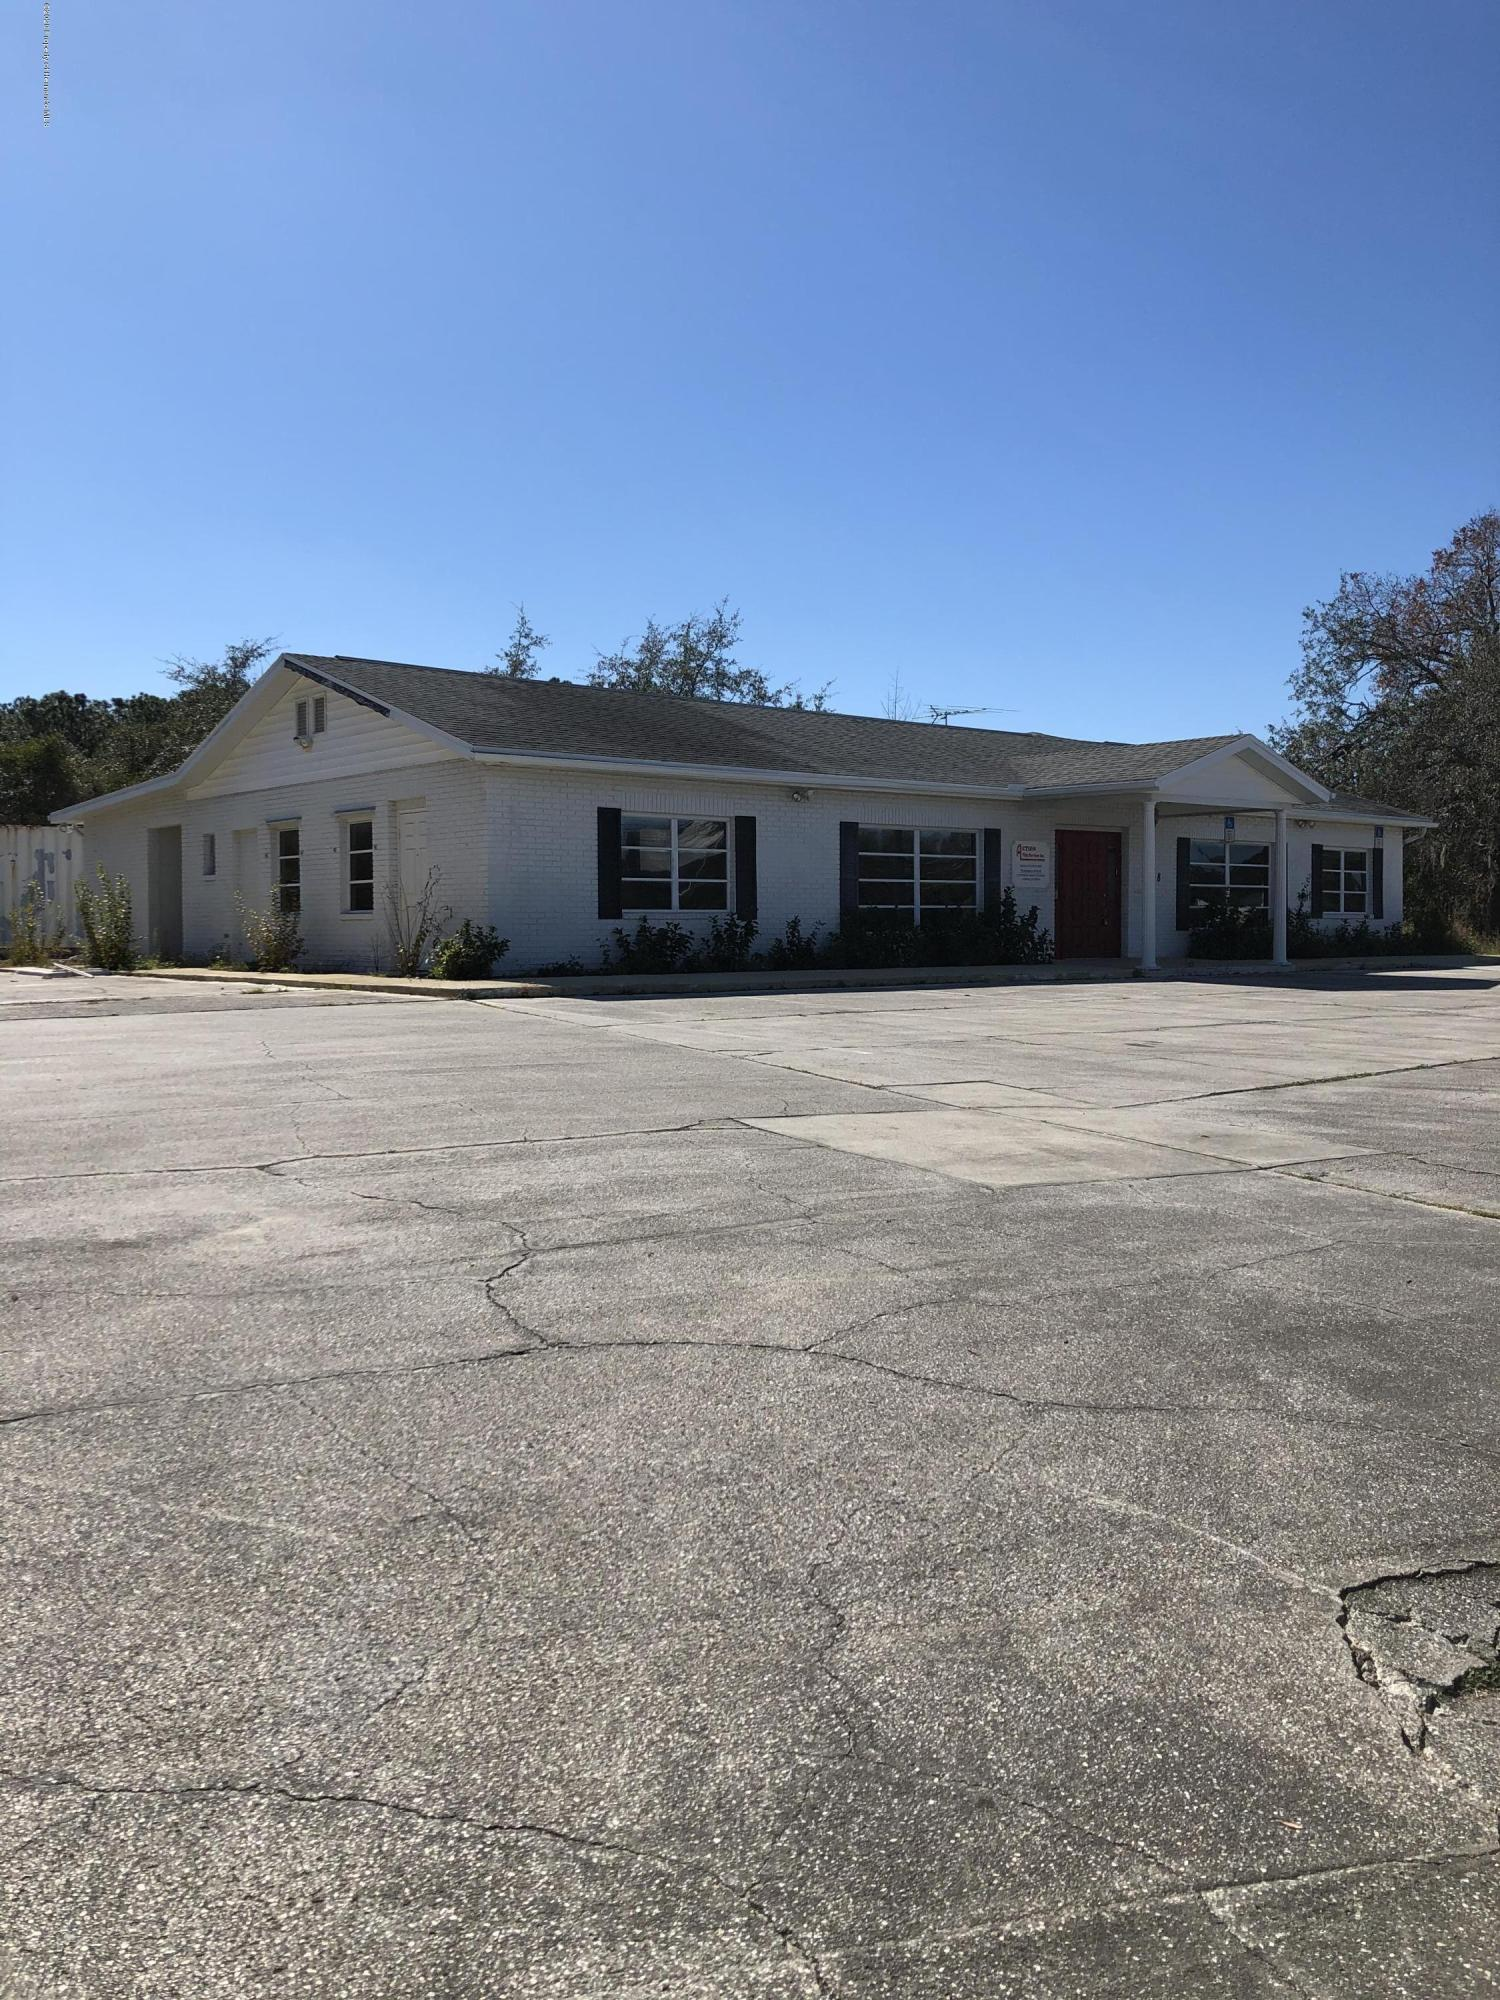 Details for 3248 Commercial Way, Spring Hill, FL 34606